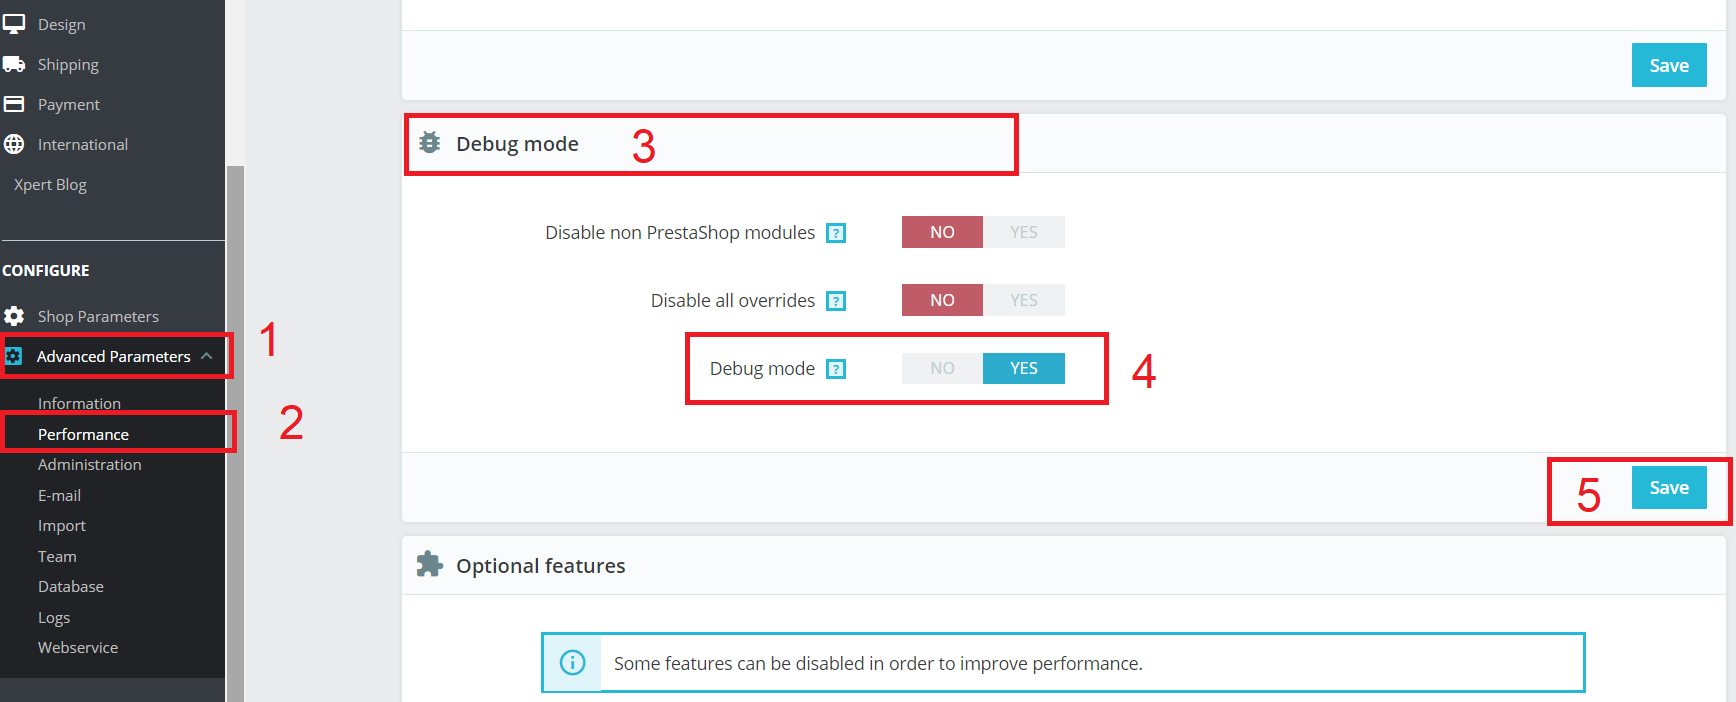 How to enable Debug mode in Prestashop 1.7?